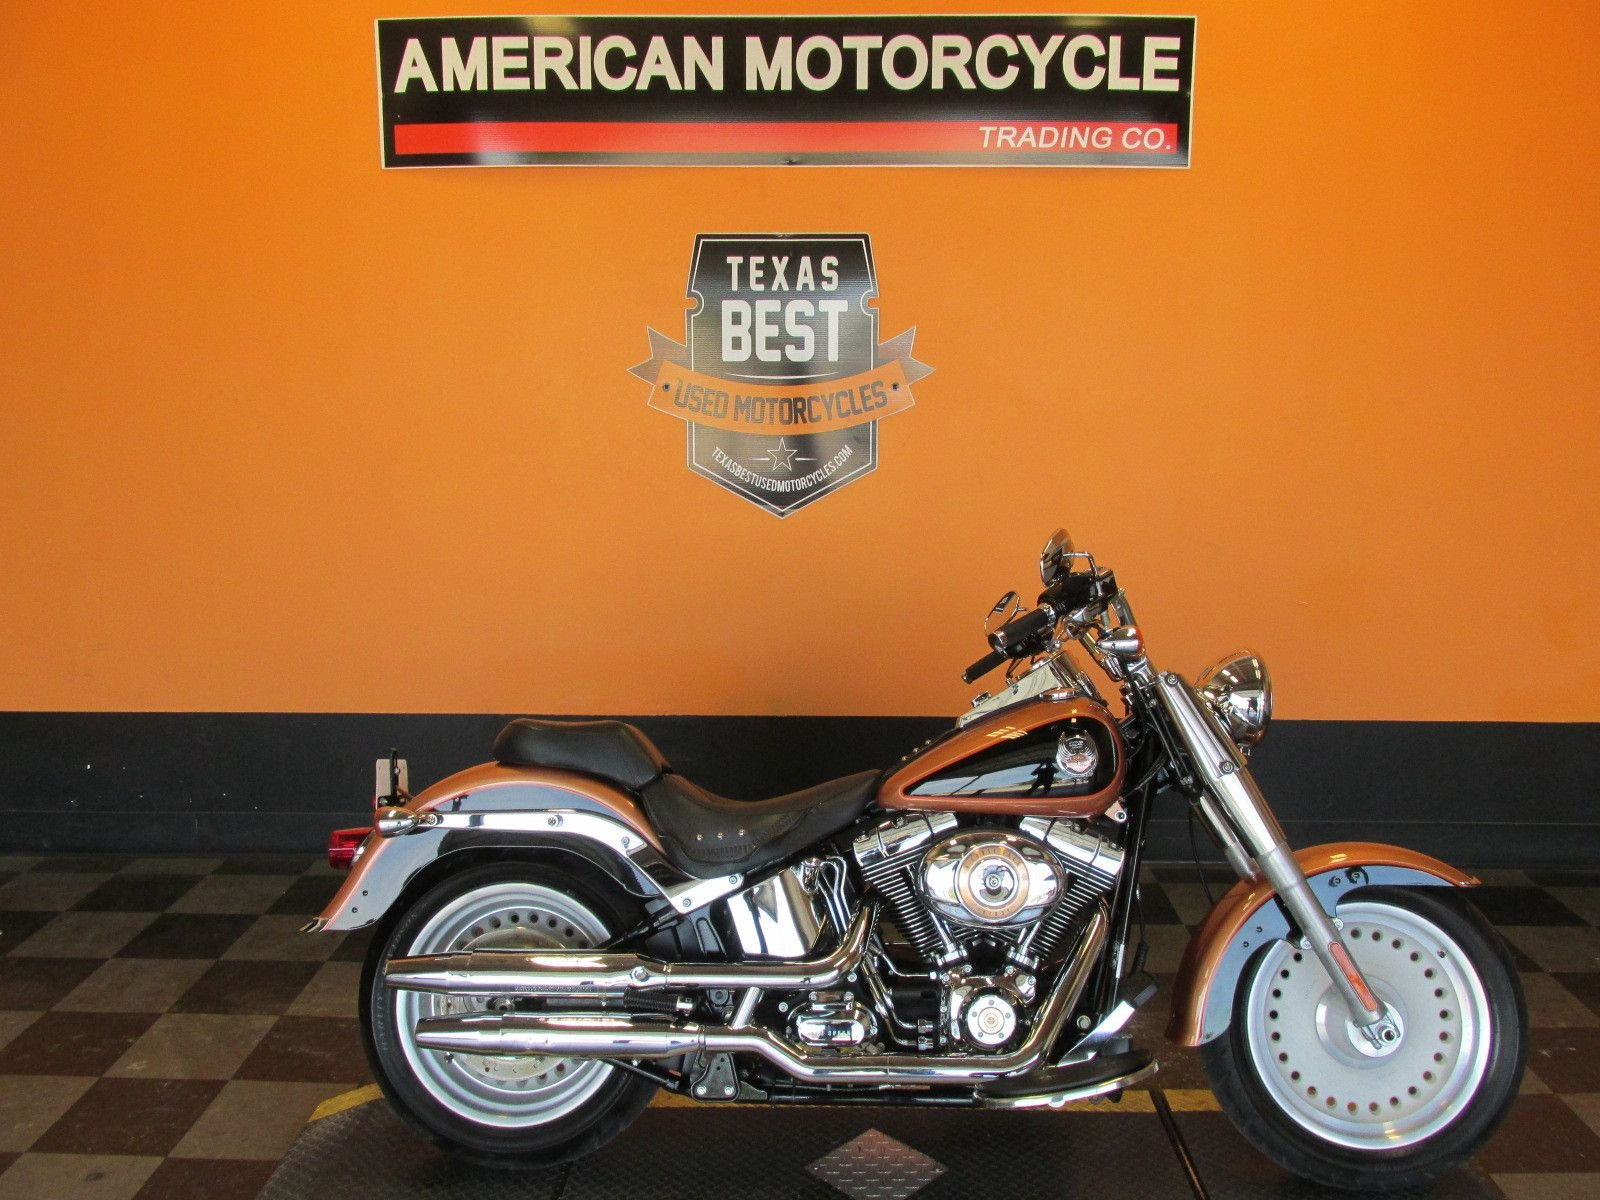 2008 harley davidson softail fat boy flstf 105th anniversary